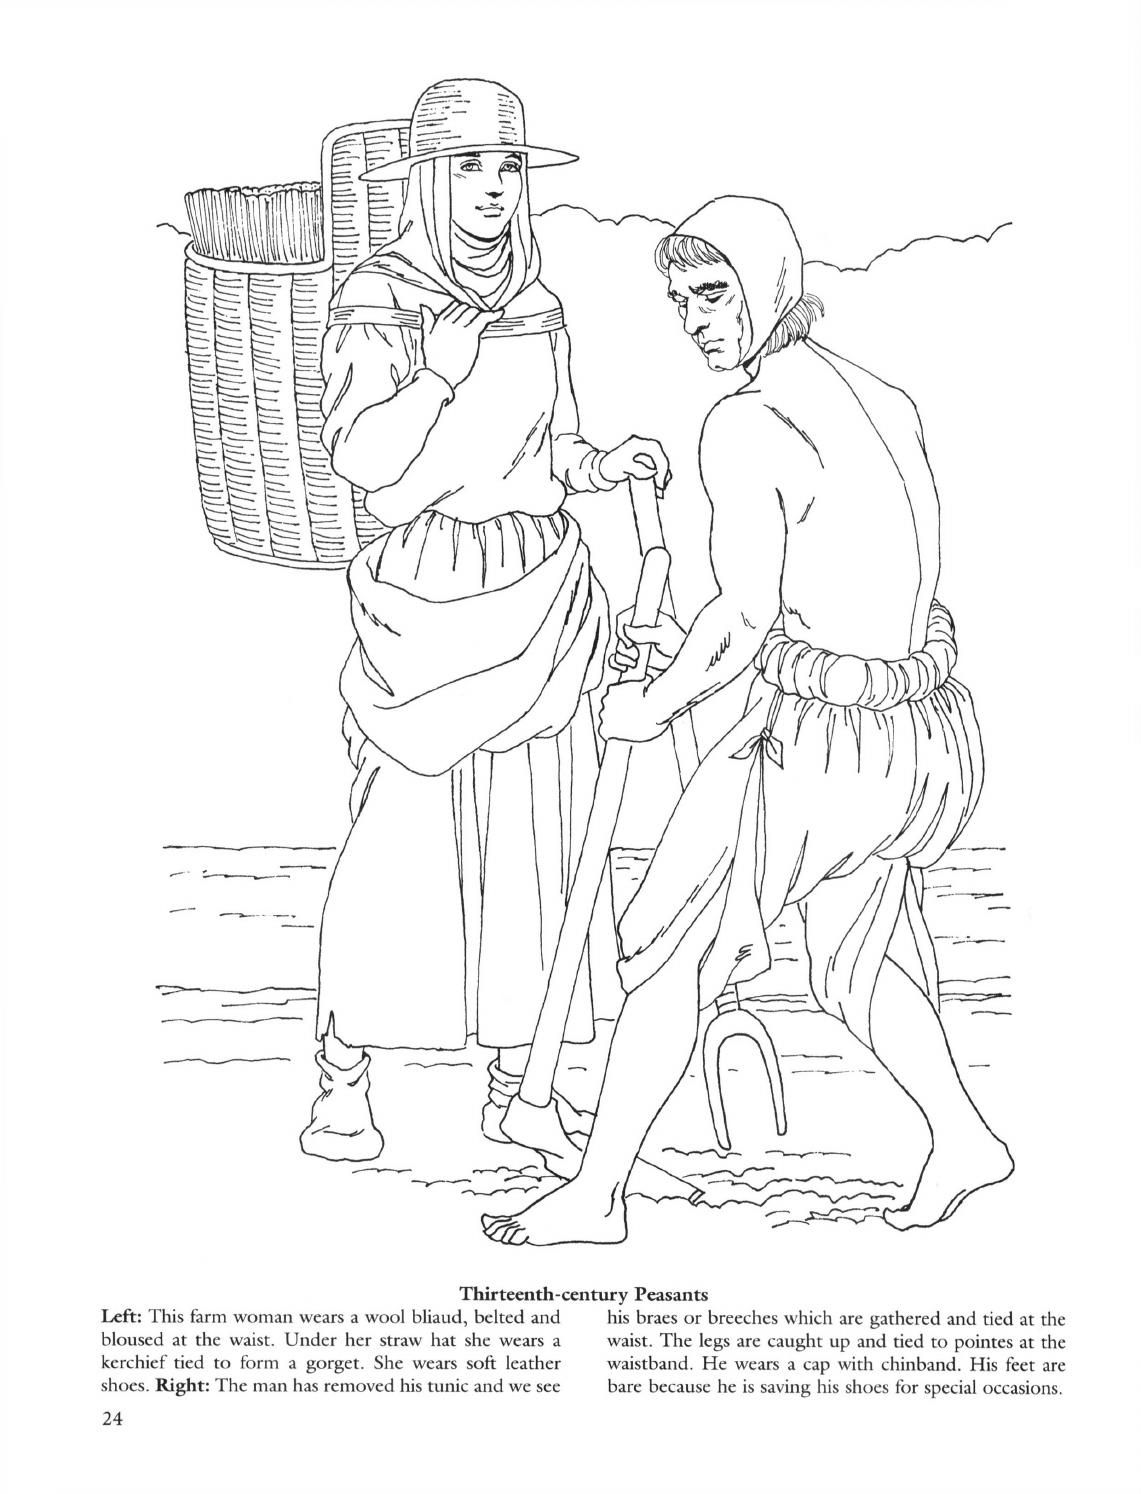 Medieval fashions coloring book | Fashion coloring book ...